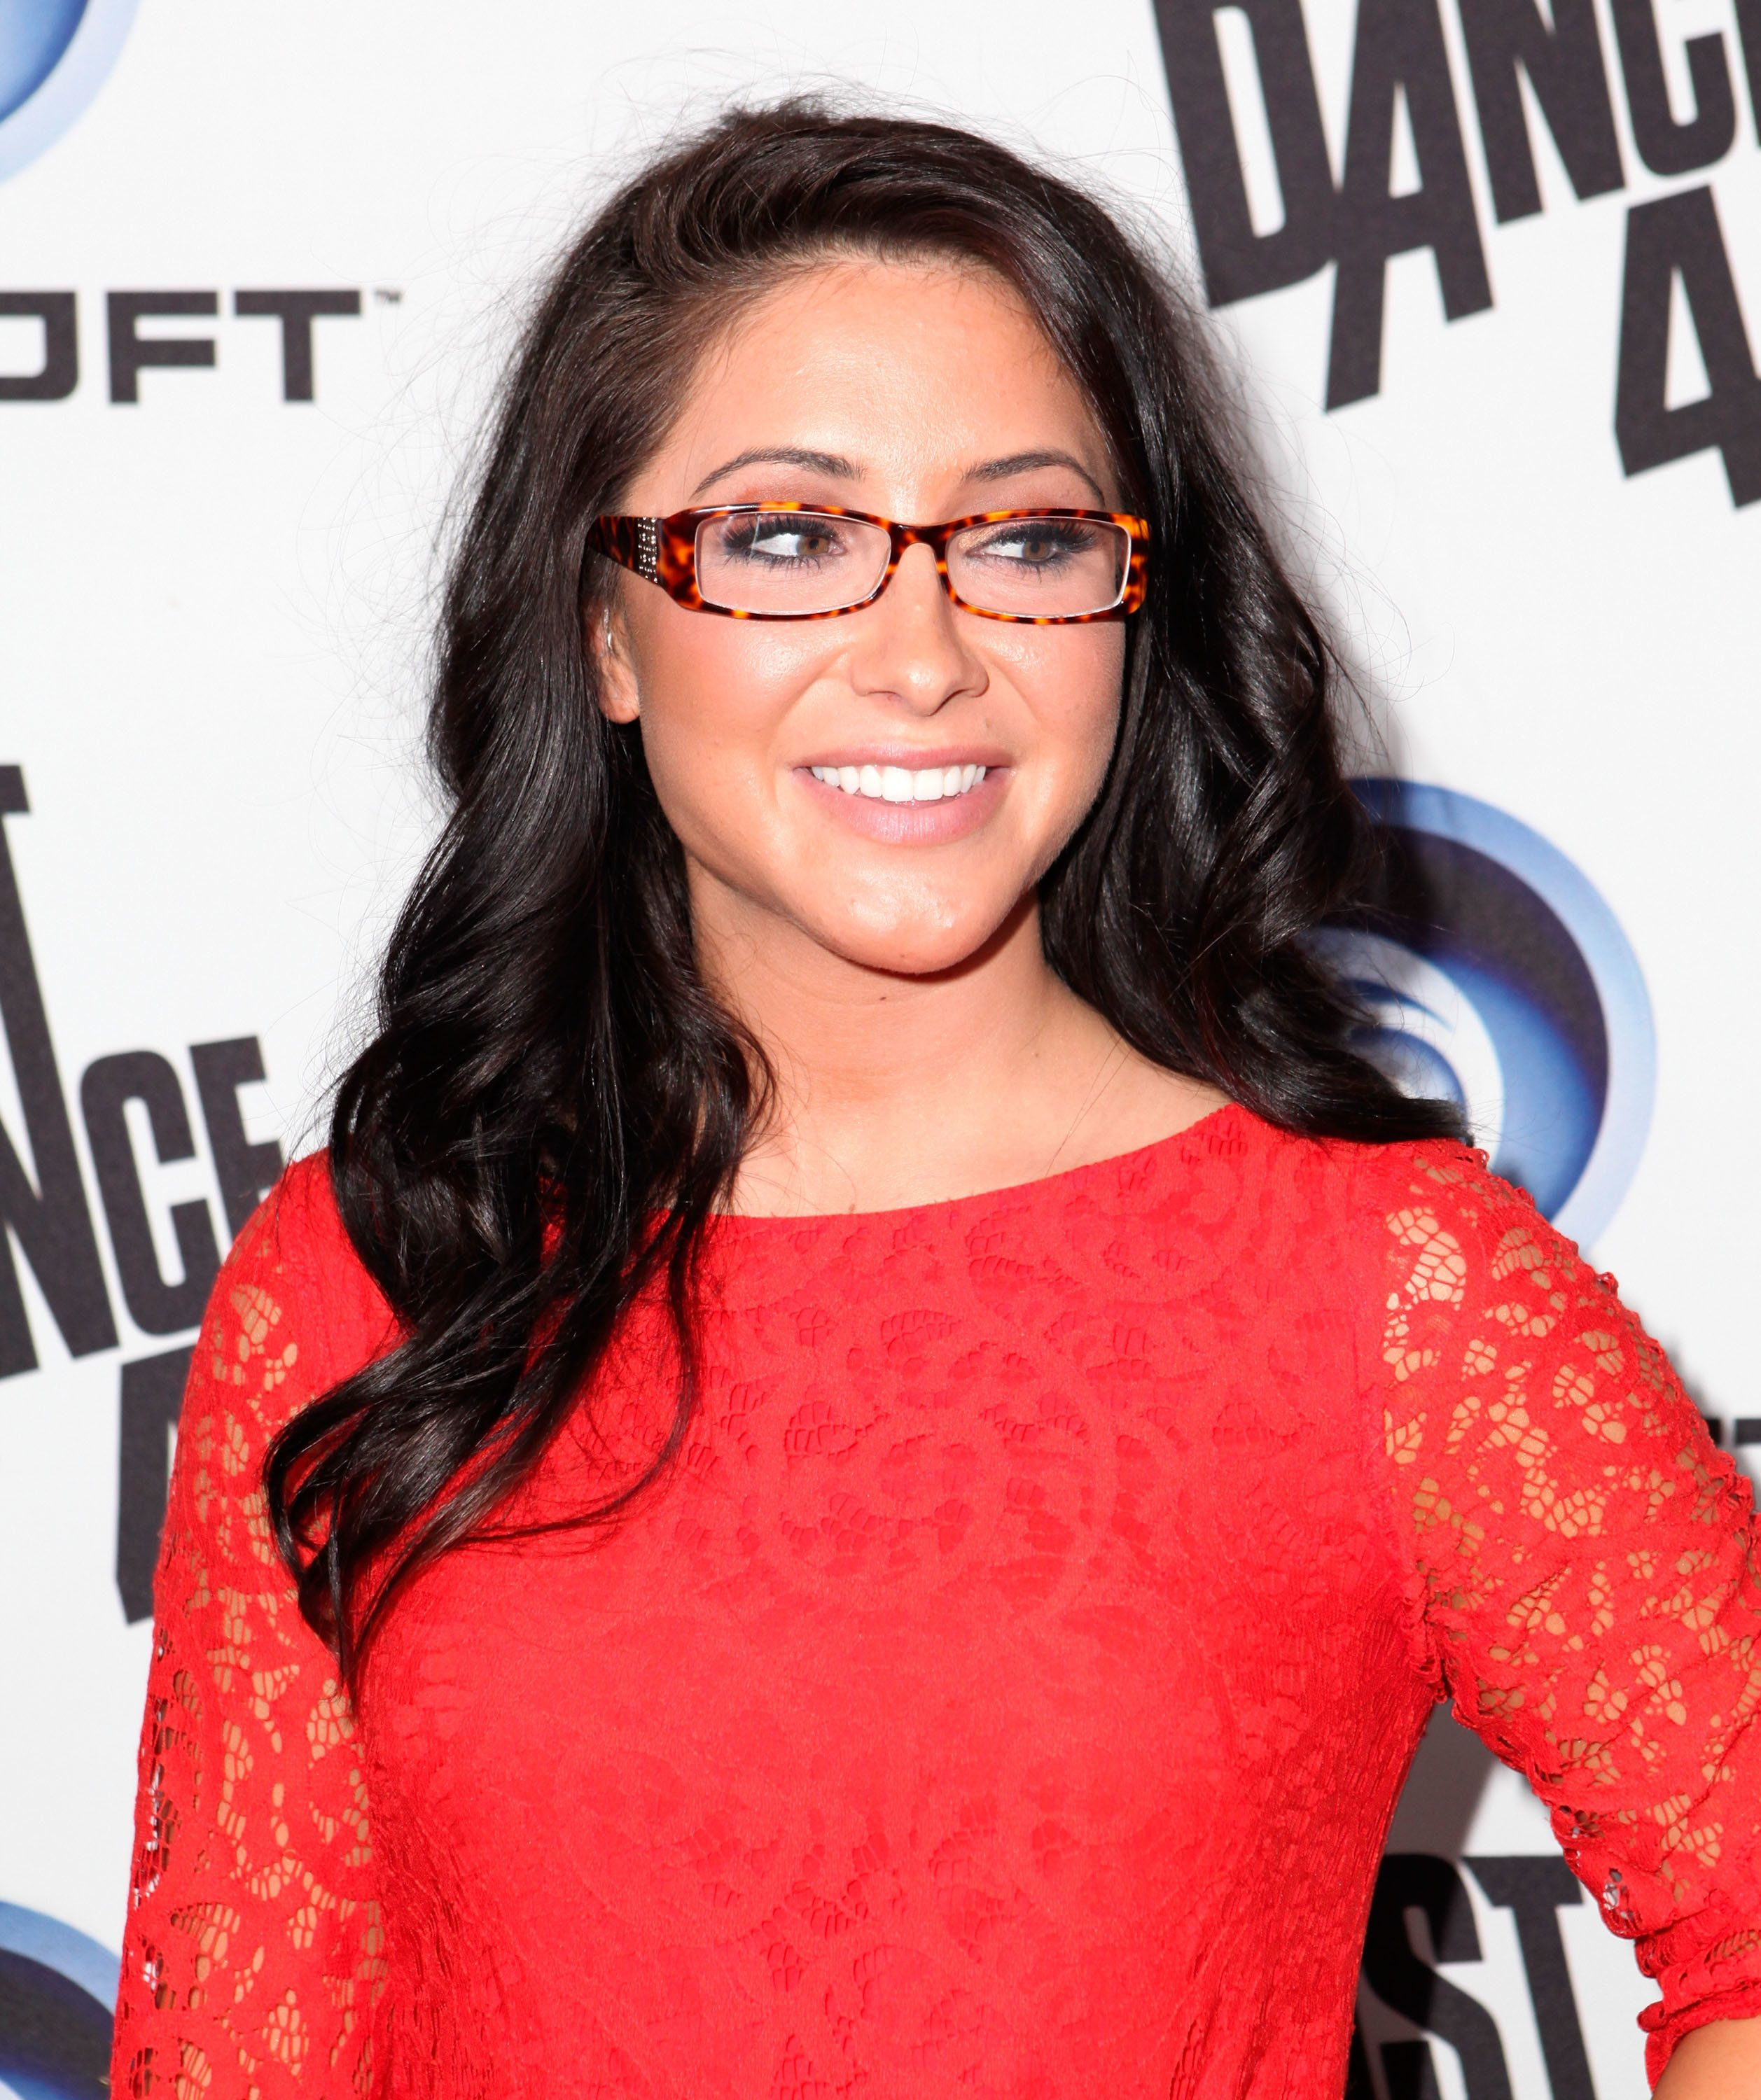 HOLLYWOOD, CA - OCTOBER 02:  Bristol Palin arrives for Ubisoft Presents The Launch Of Just Dance 4 at Lexington Social House on October 2, 2012 in Hollywood, California.  (Photo by Gabriel Olsen/FilmMagic)